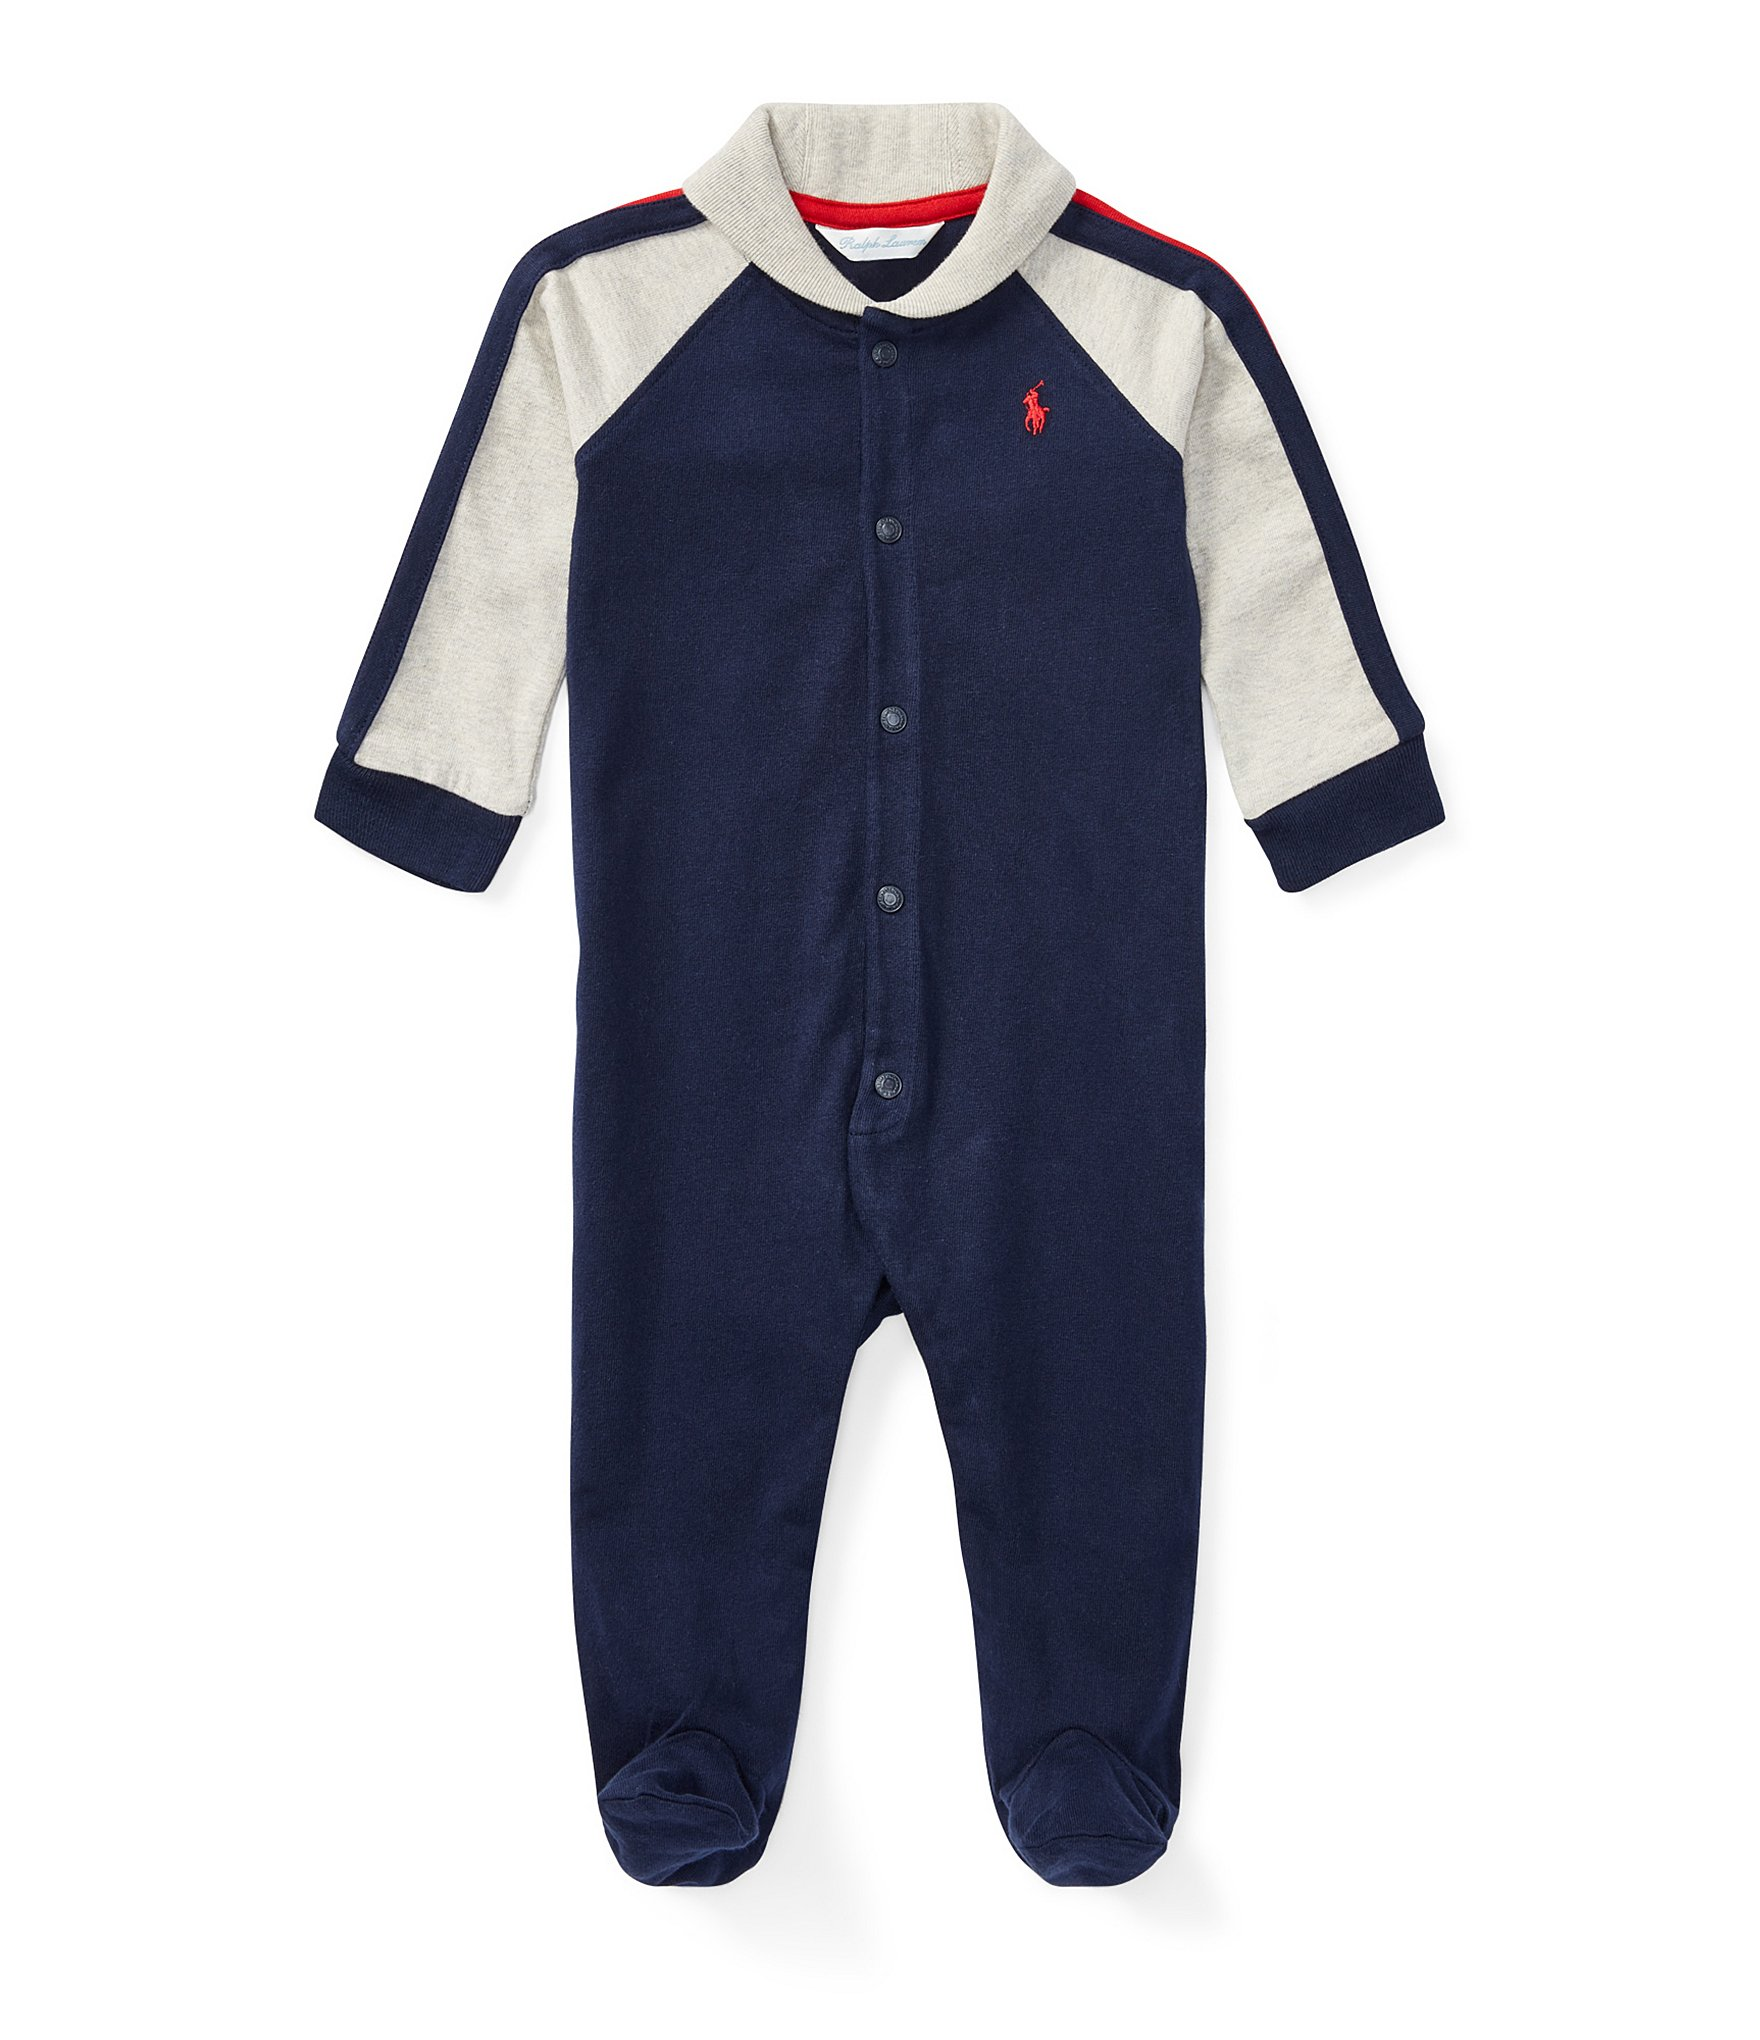 e5fafeb6d55bc Ralph Lauren Childrenswear Baby Boys Newborn-9 Months Shawl Collar Footed  Coverall